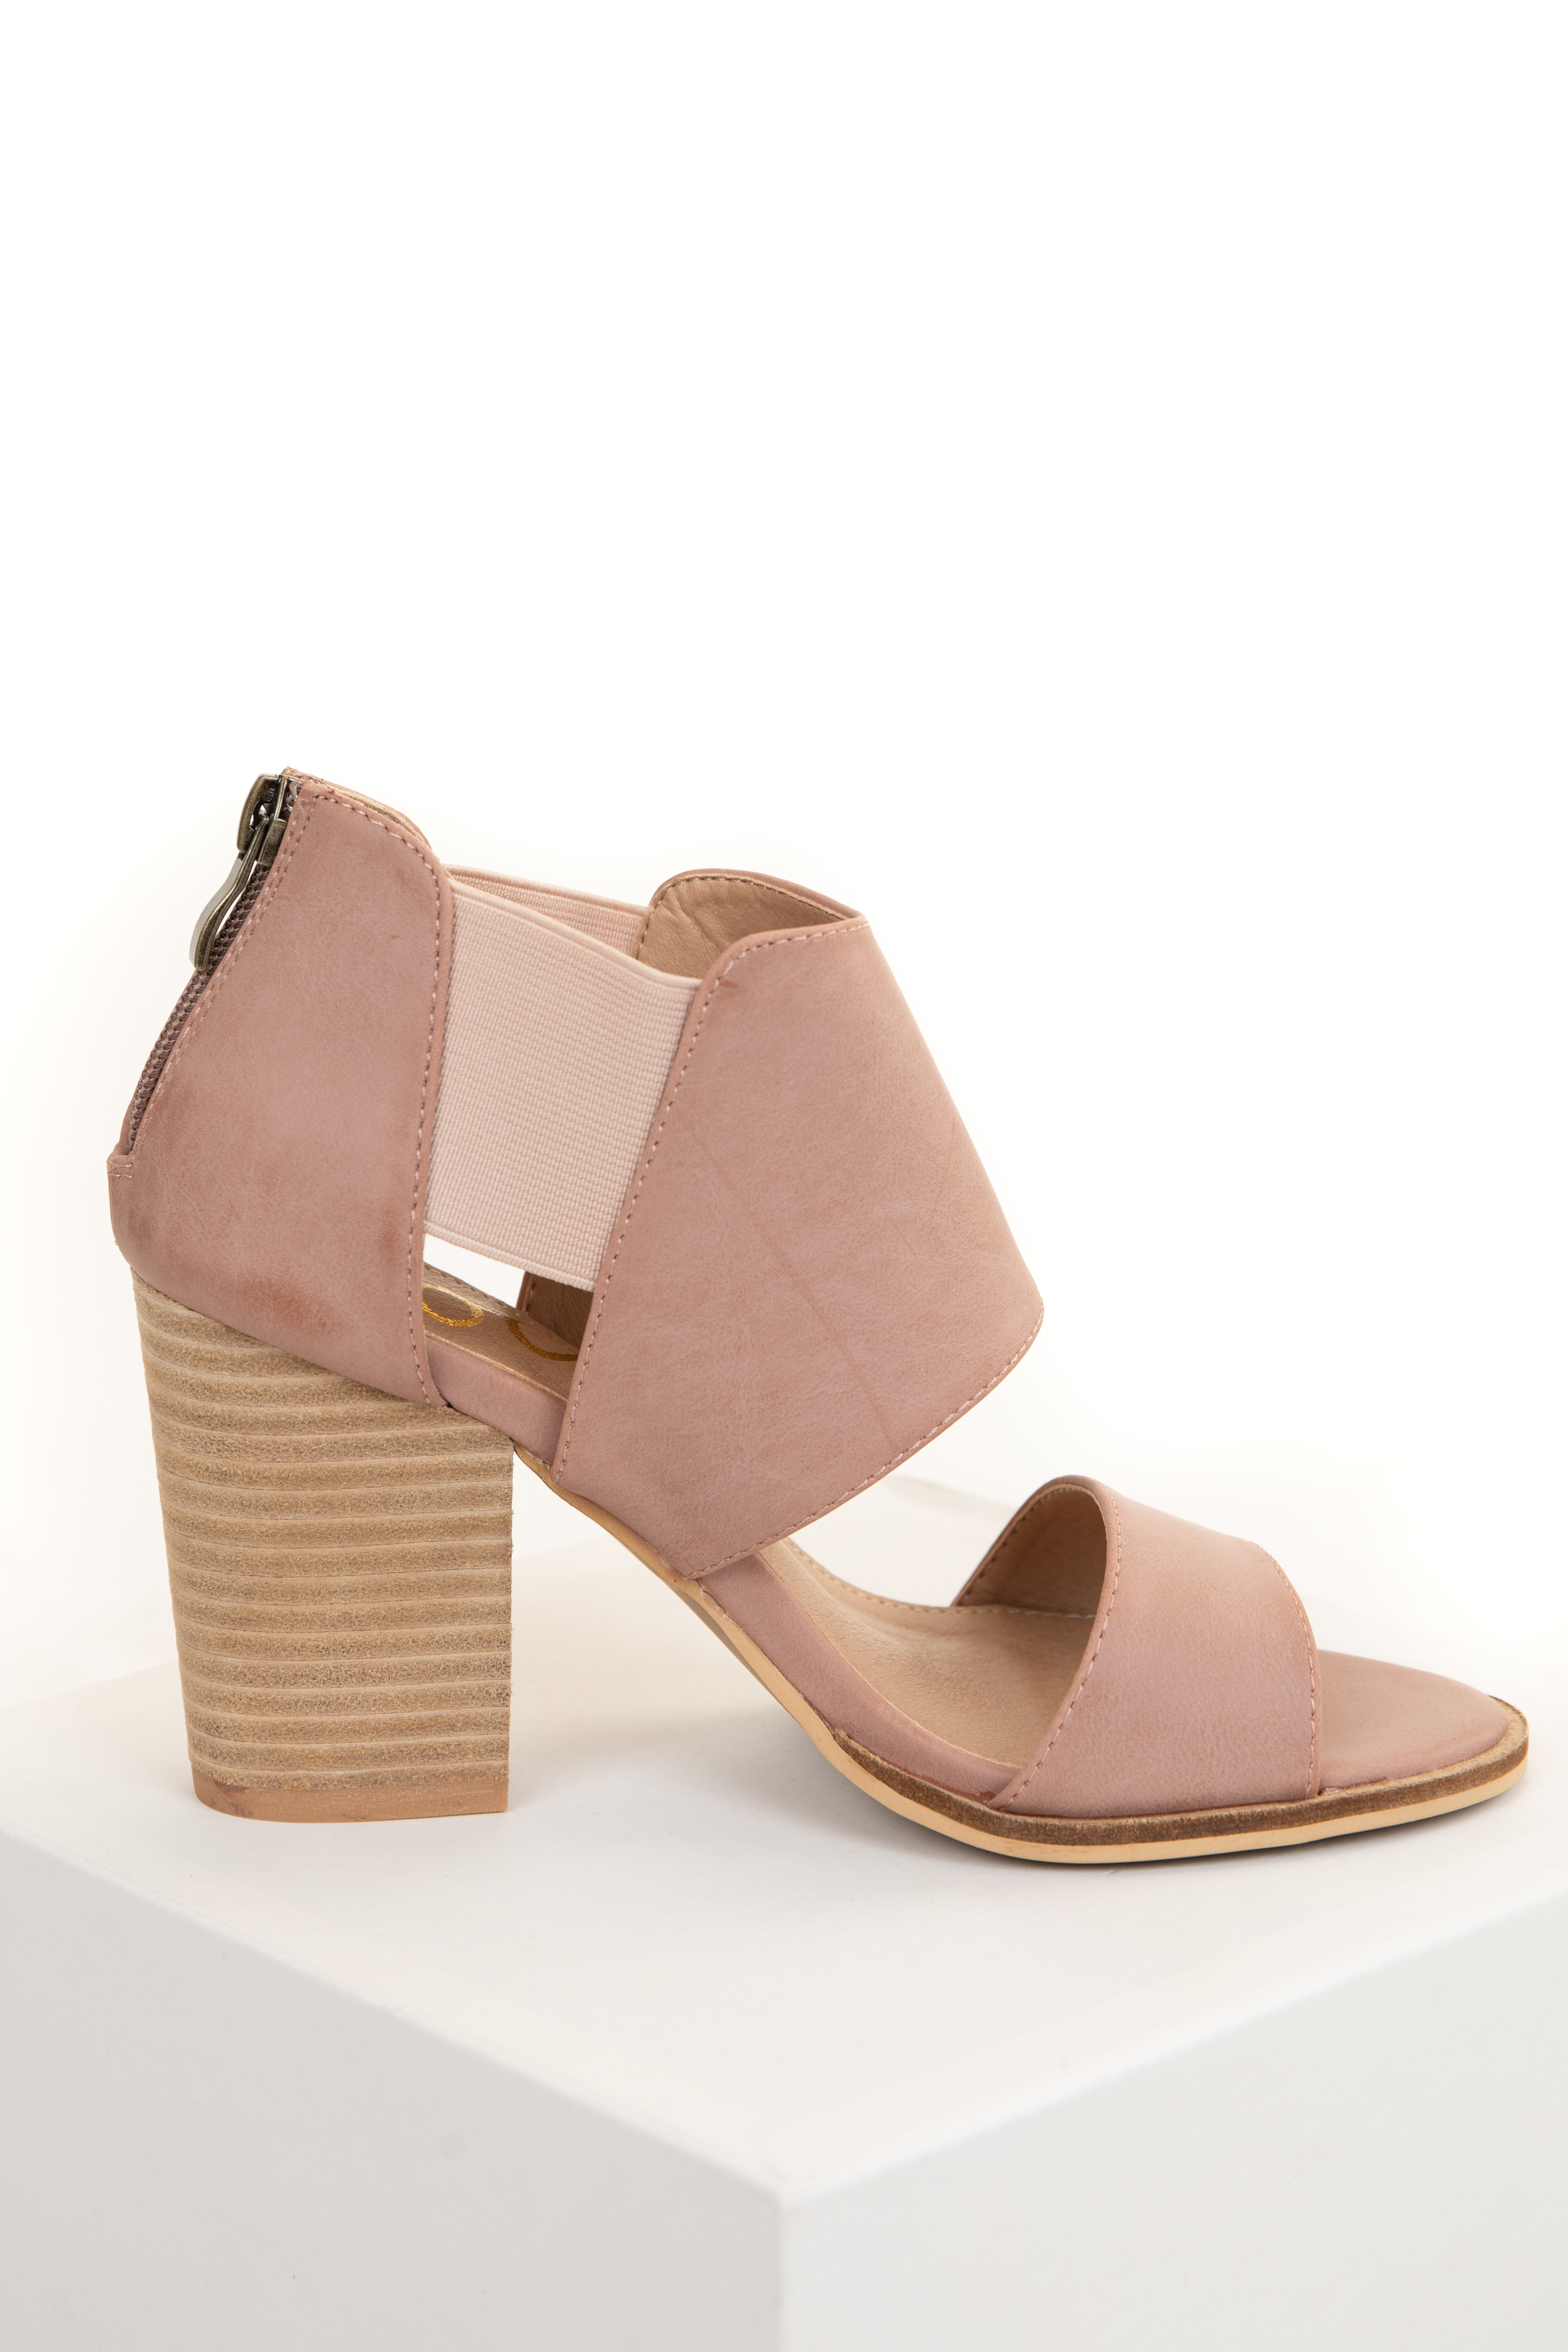 Blush Pink Faux Leather Open Toed Heels with Elastic Sides